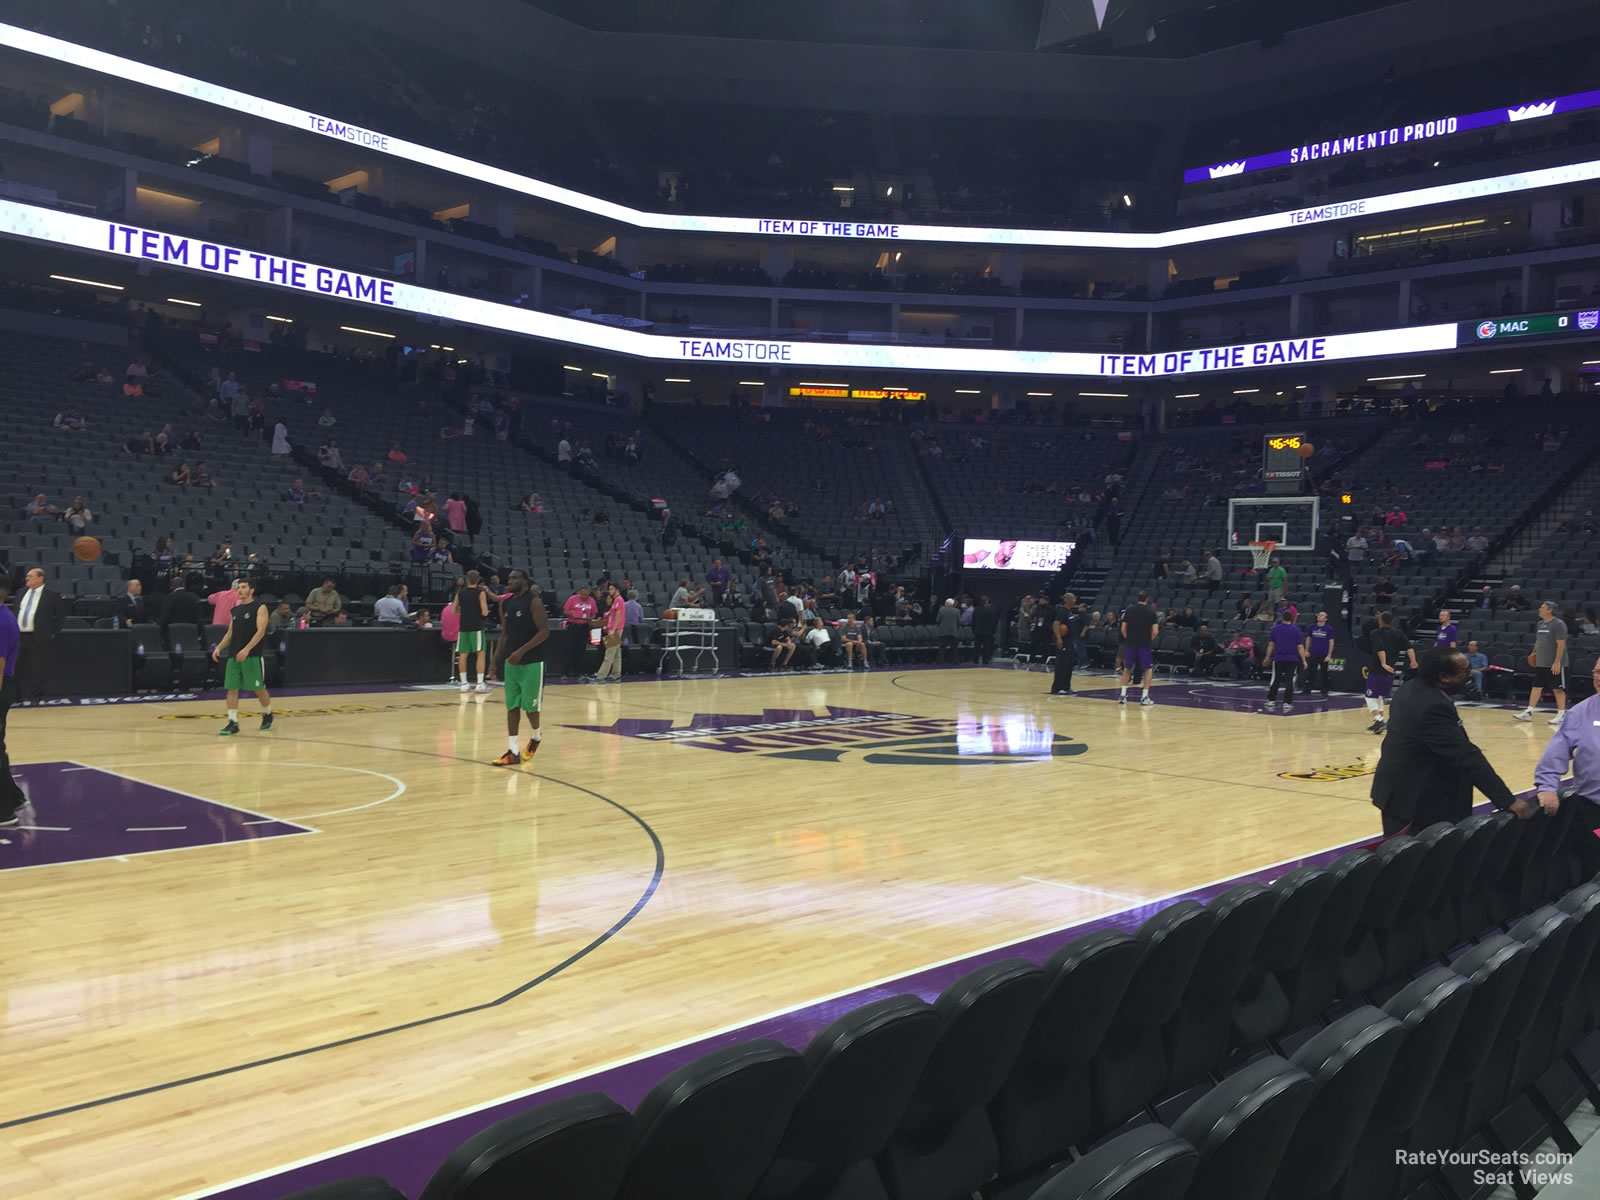 Courtside 8 seat view